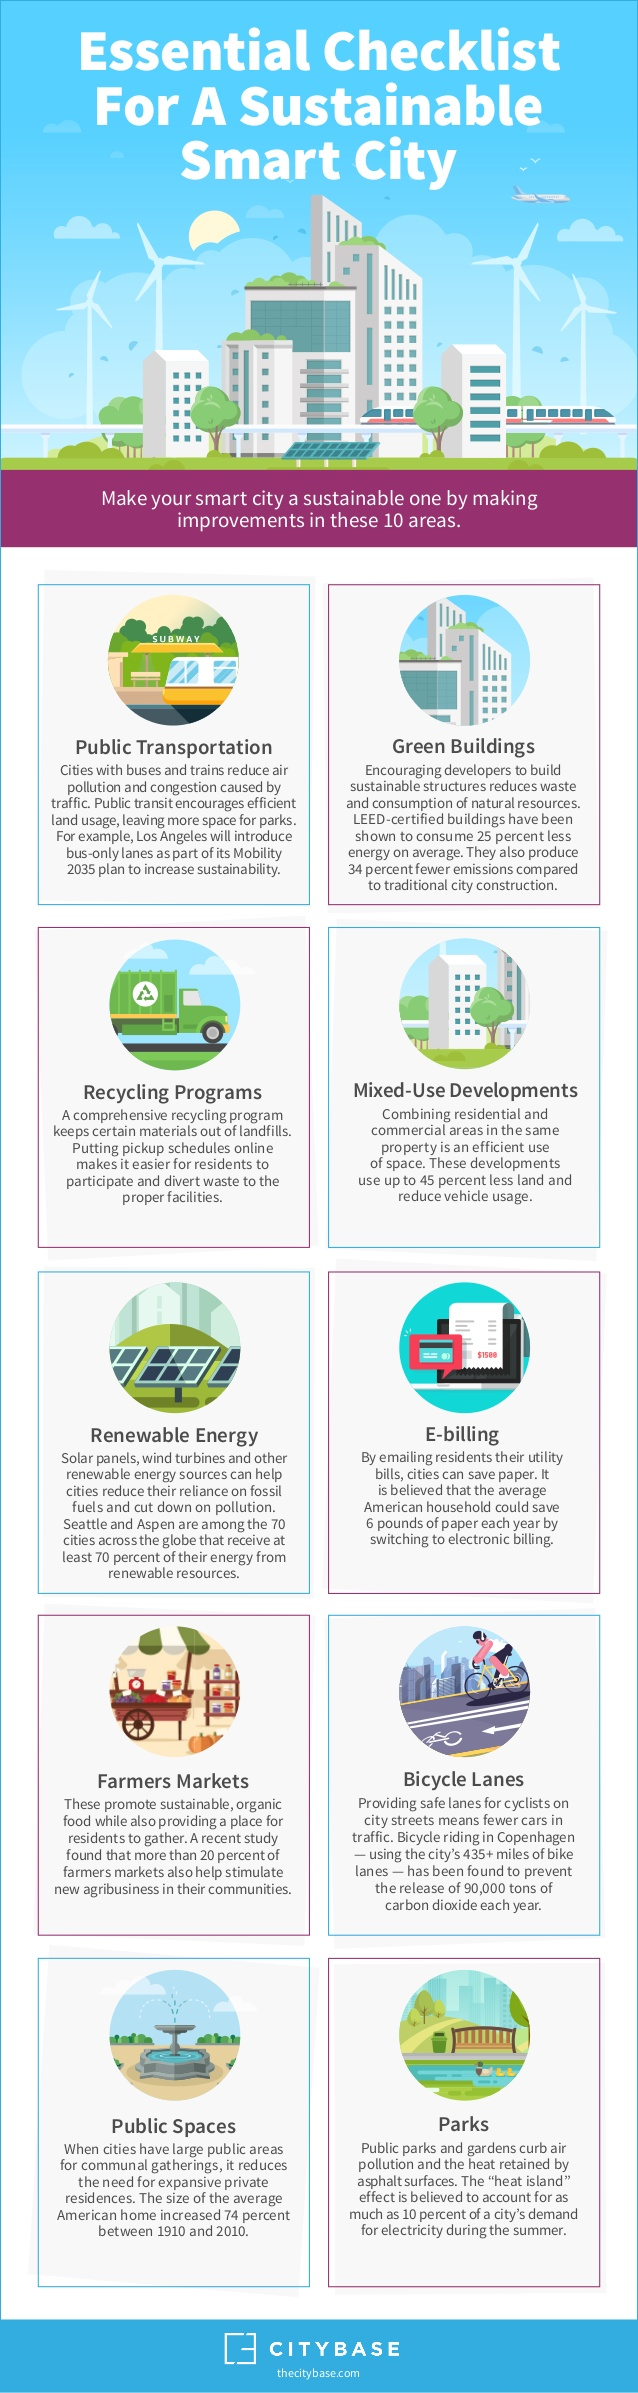 Checklist for a Sustainable Smart City